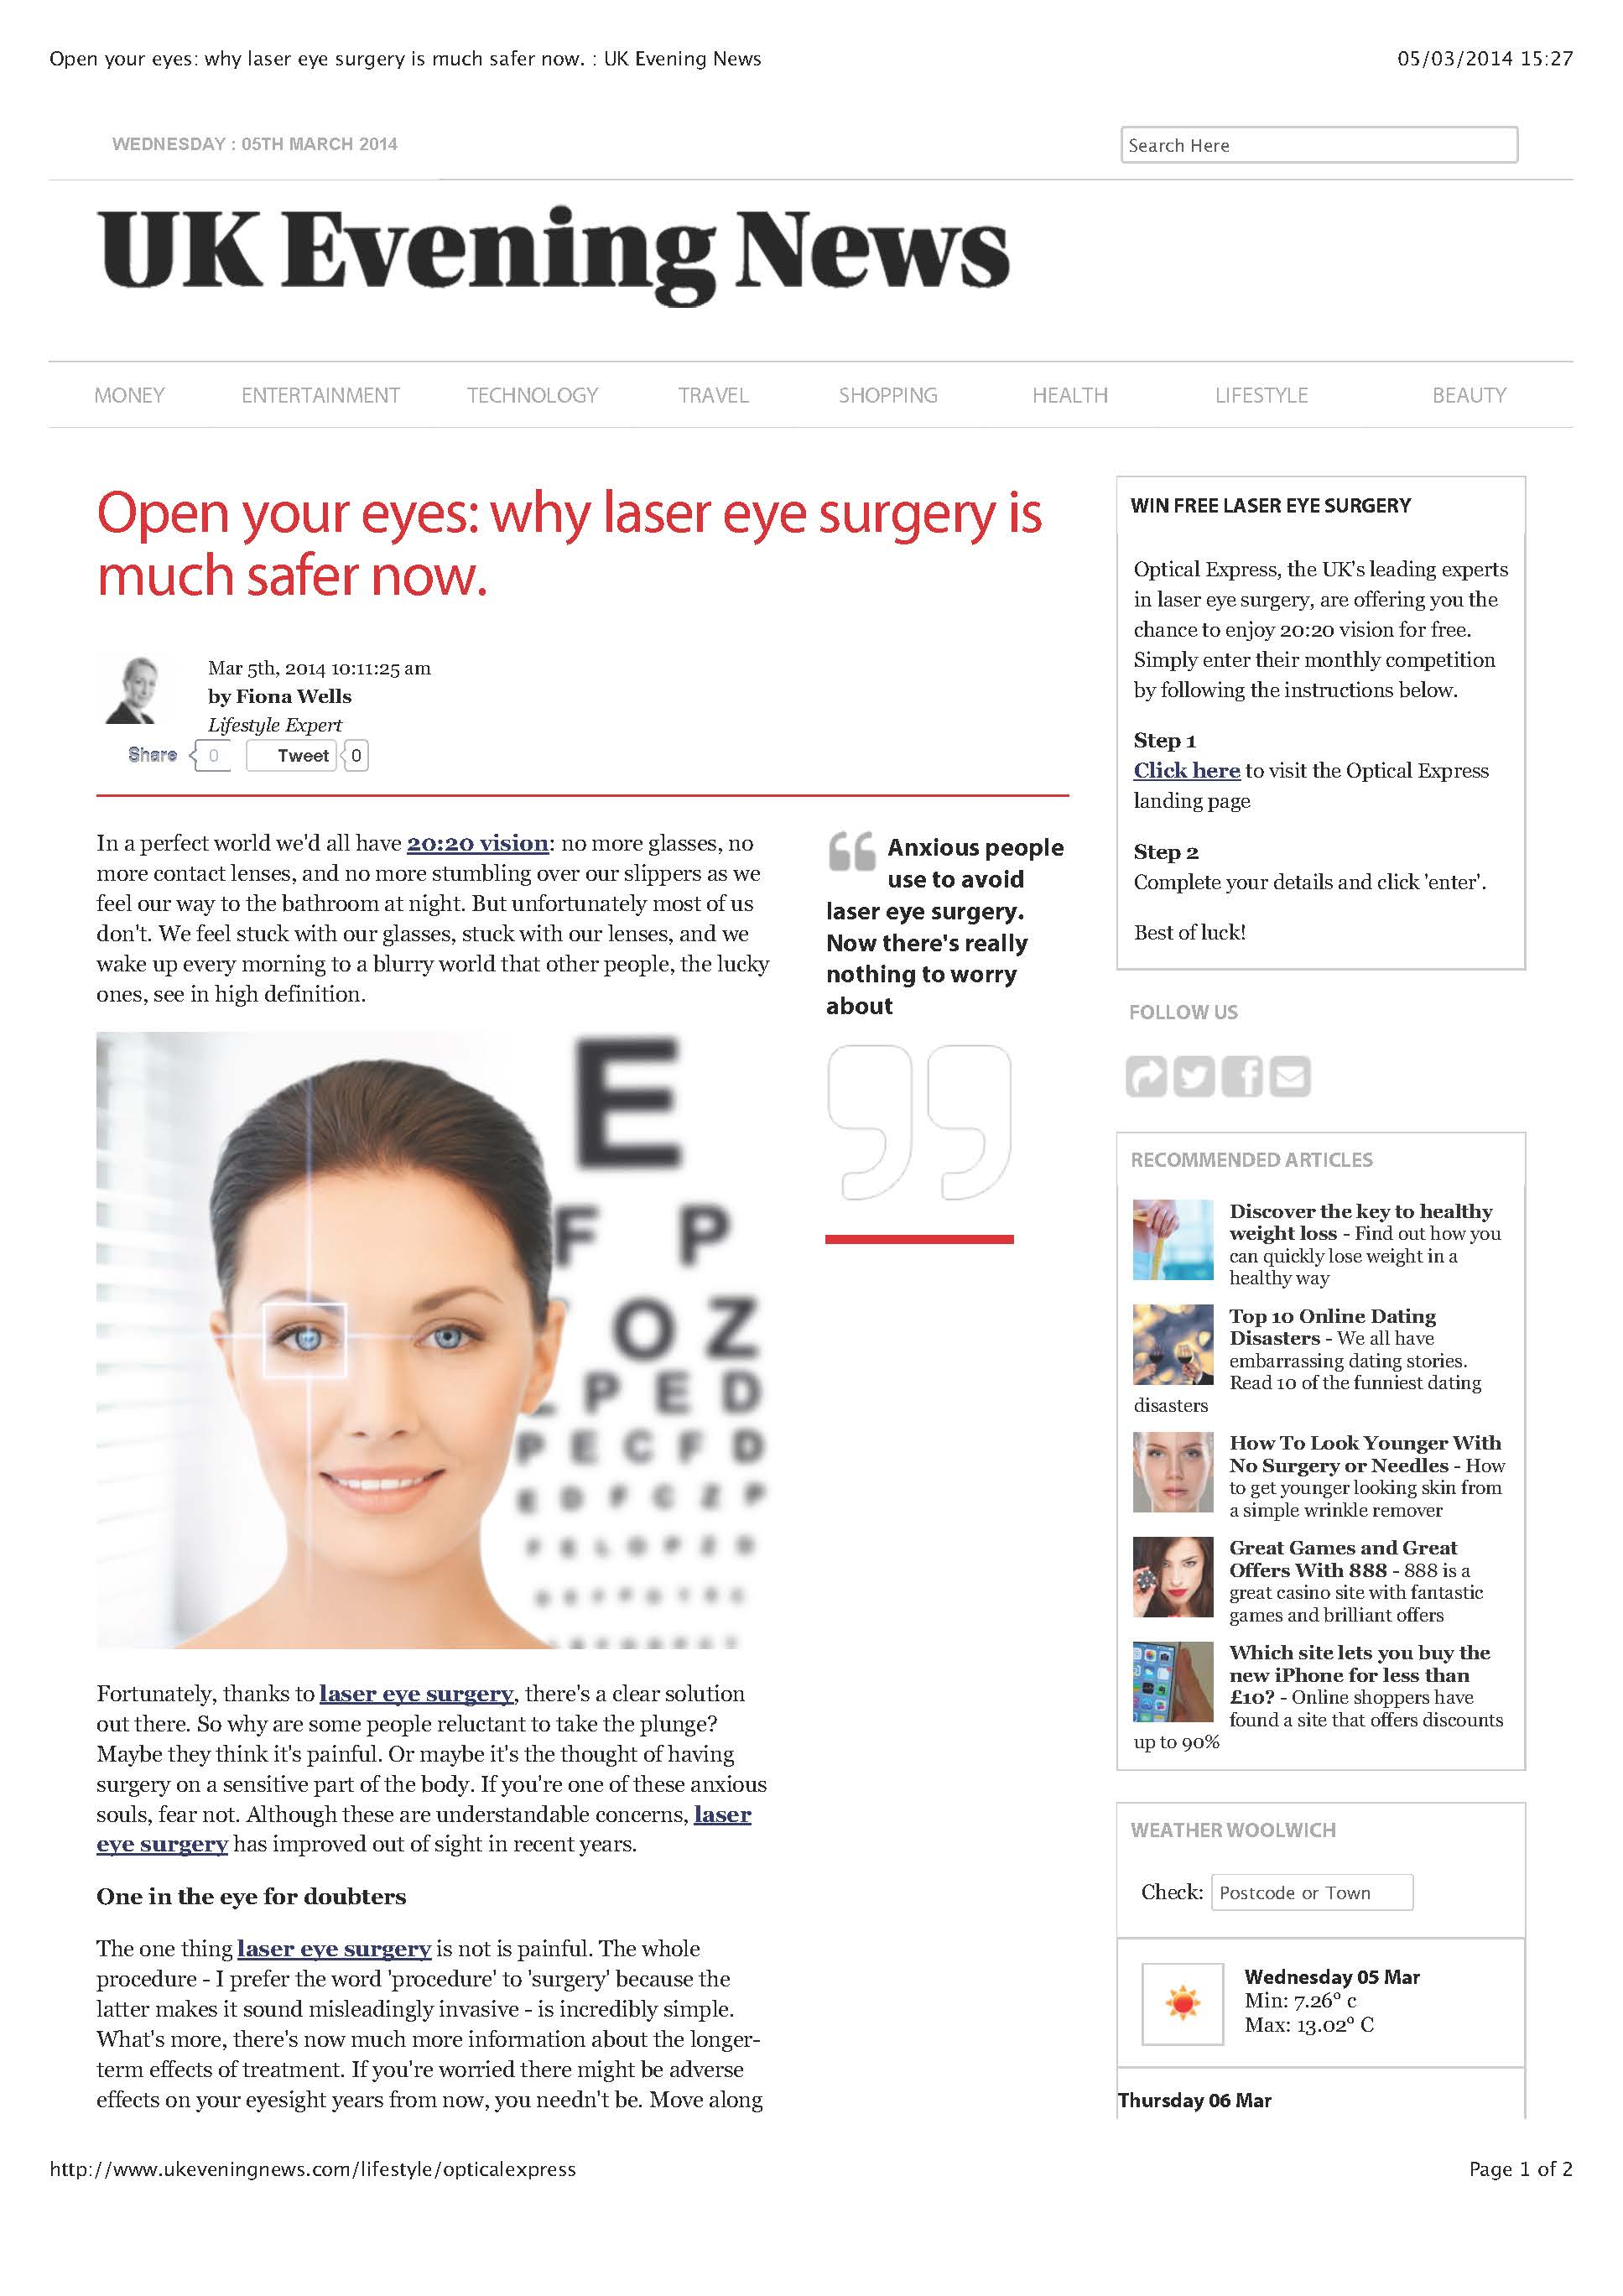 Optician Article